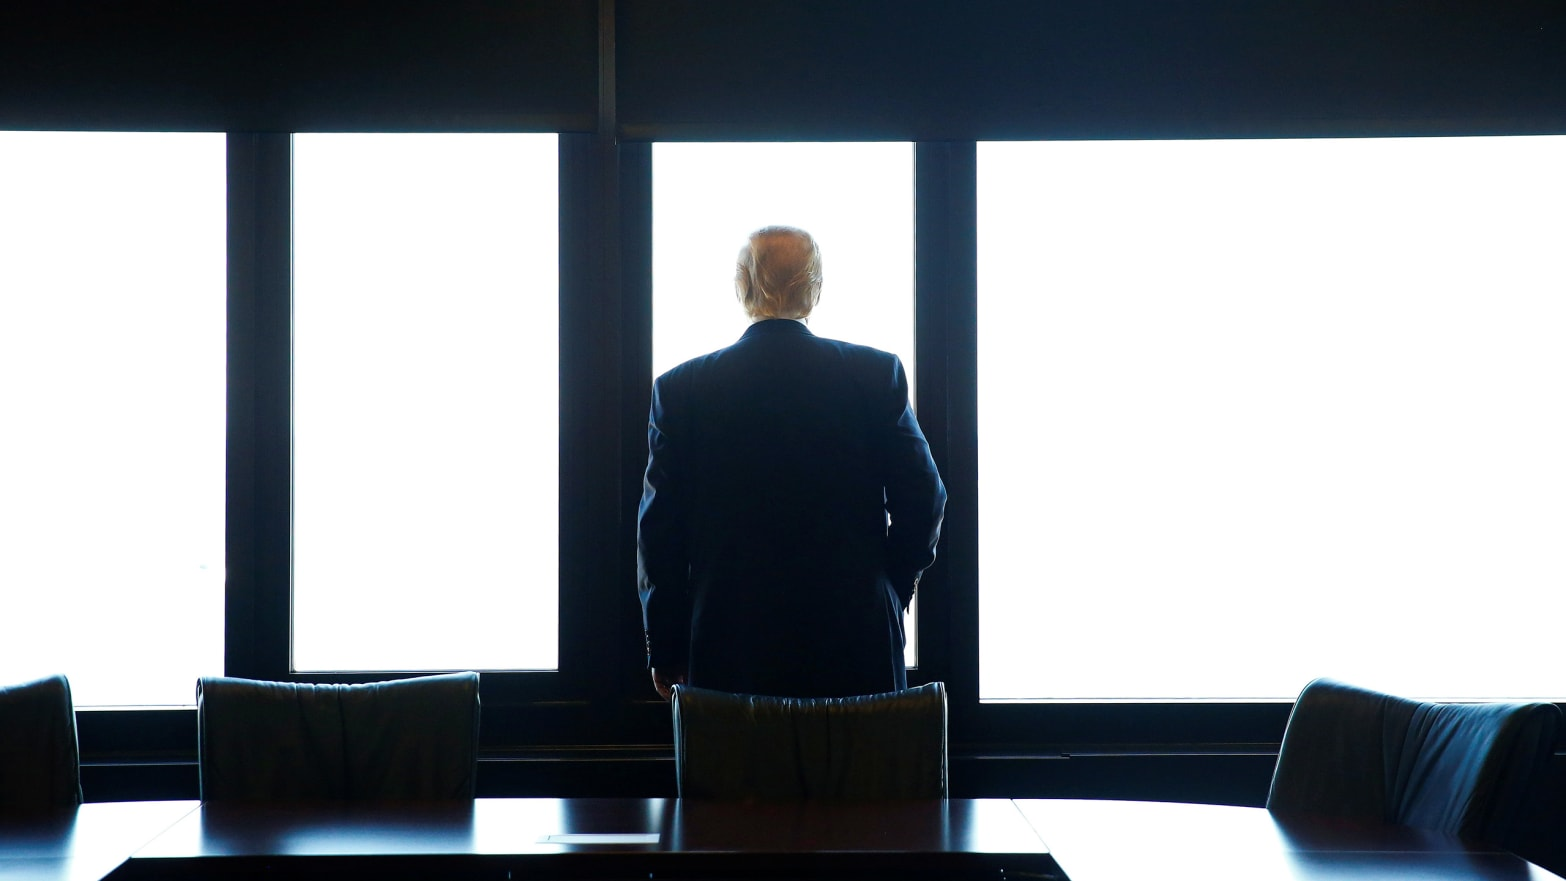 Republican U.S. presidential nominee Donald Trump looks out at Lake Michigan during a visit to the Milwaukee County War Memorial Center in Milwaukee, Wisconsin August 16, 2016.